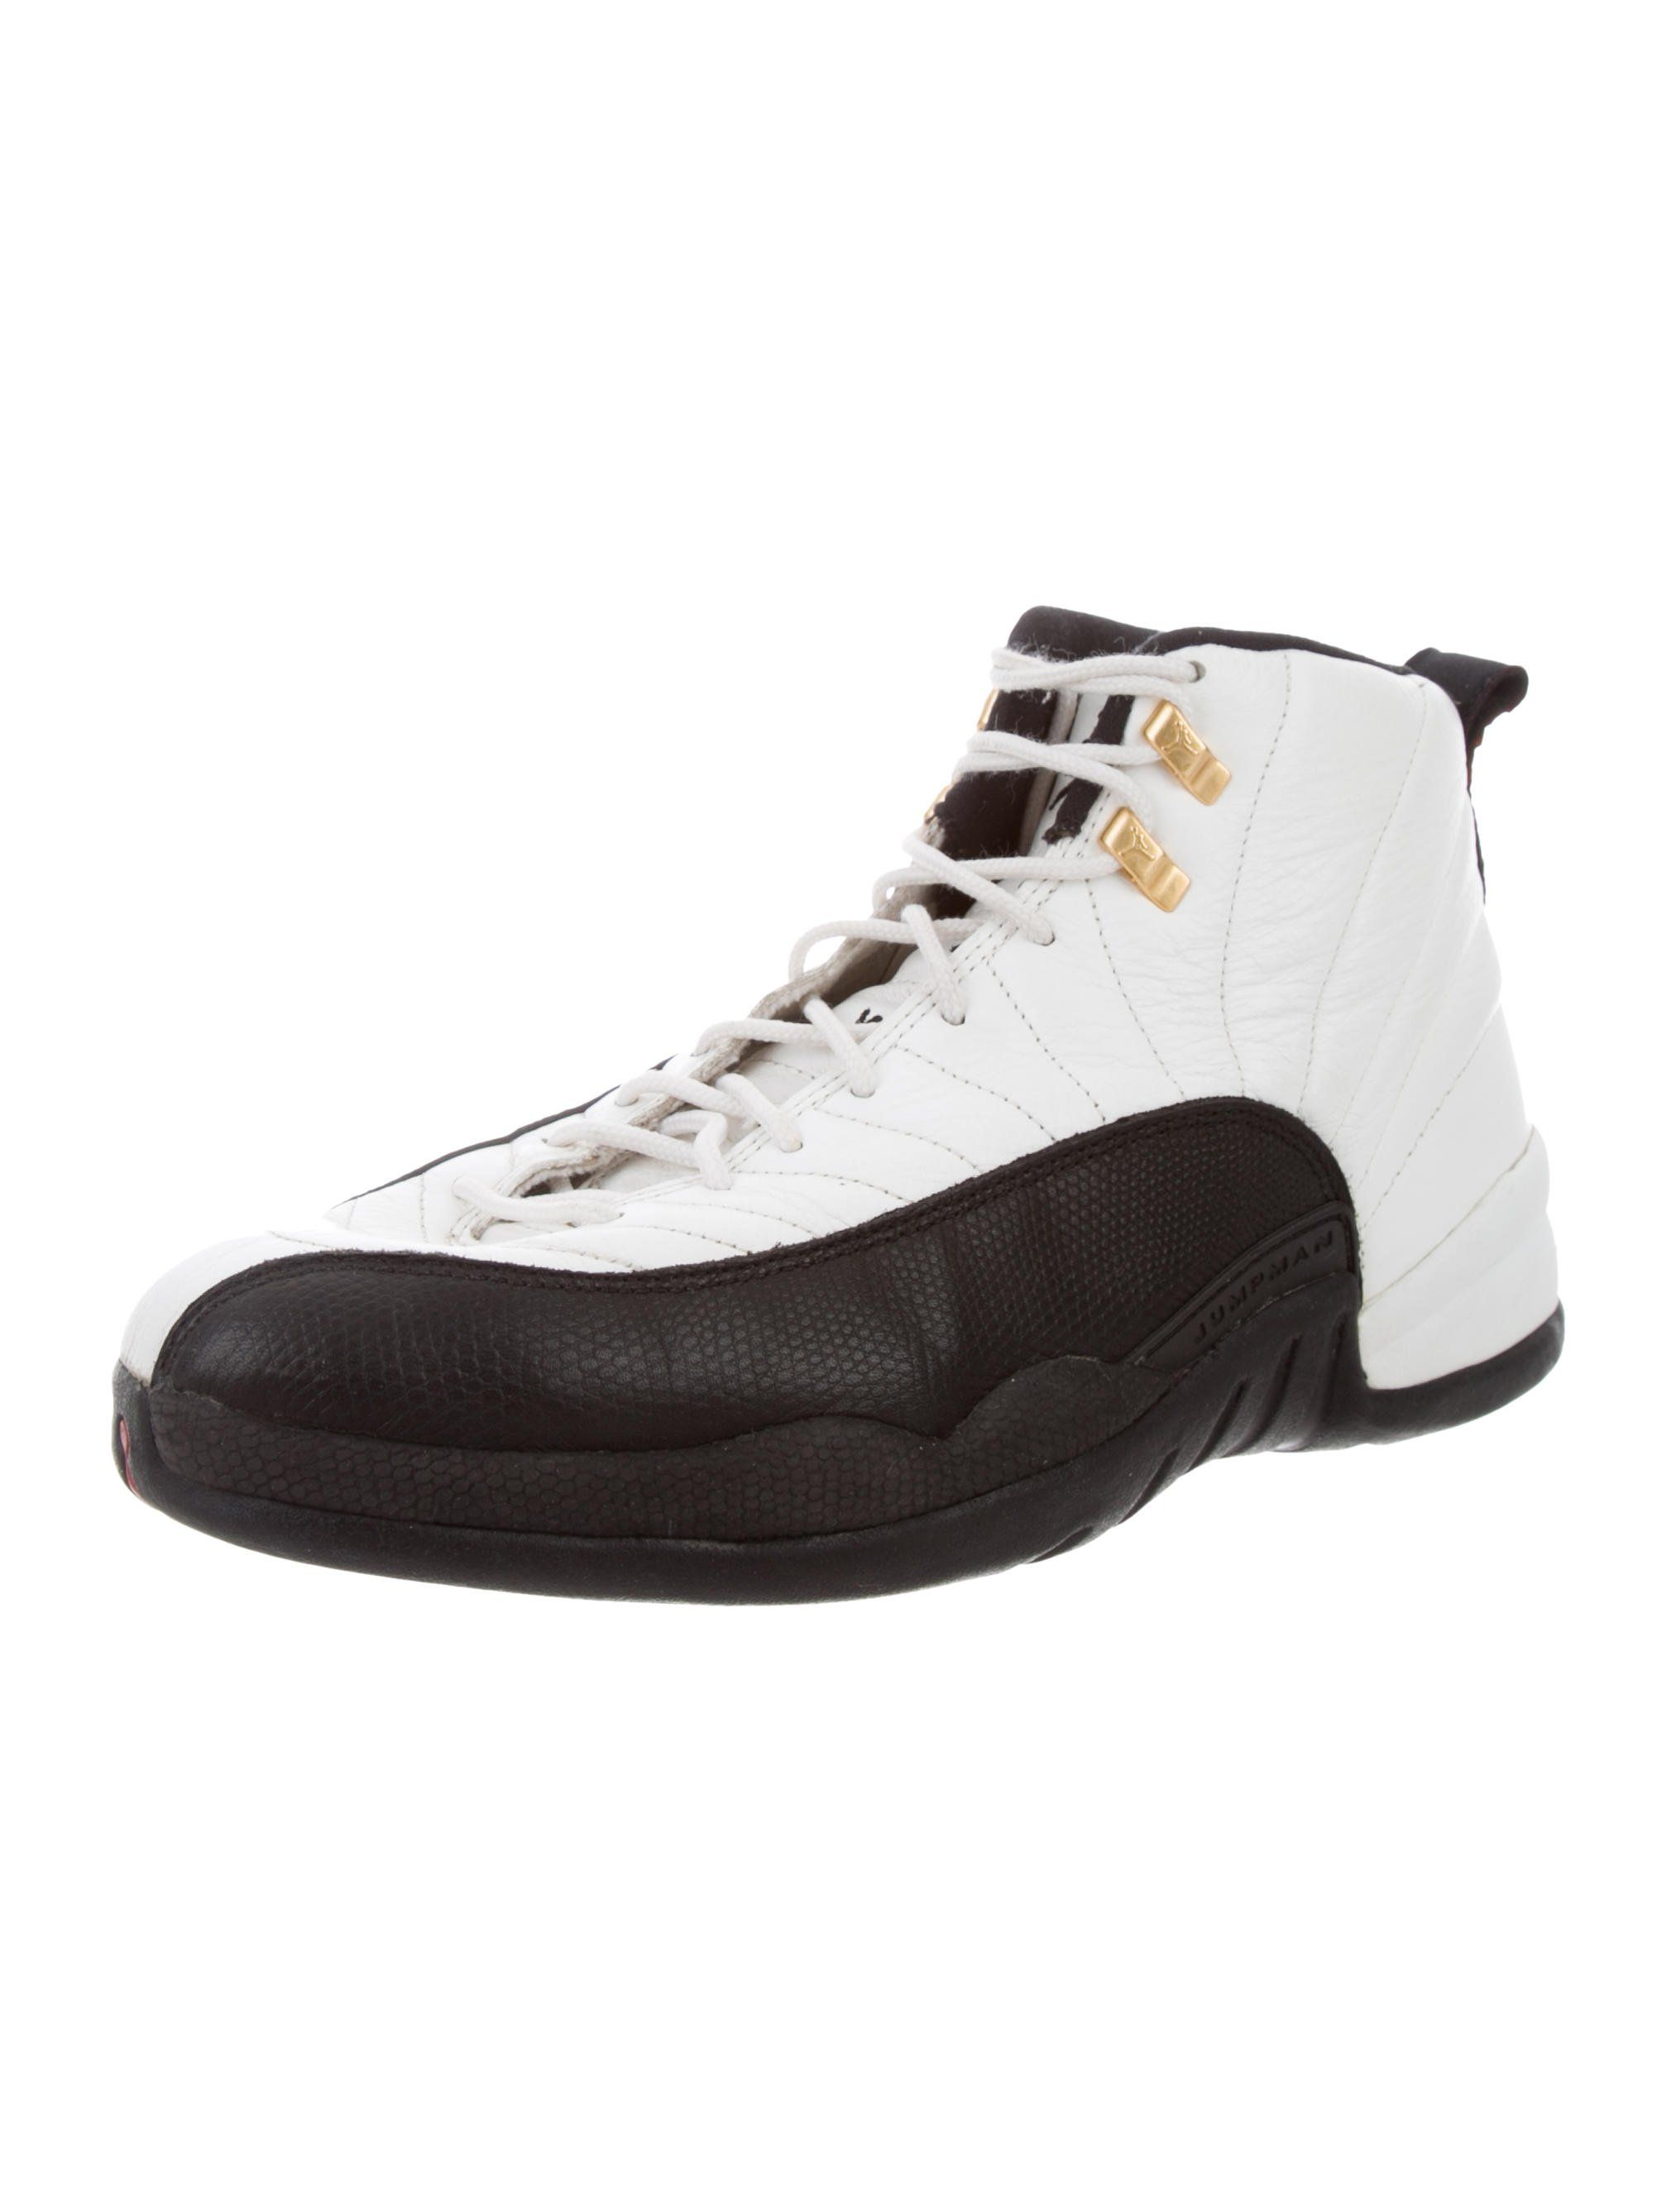 premium selection 6b19c ec0f9 From the 1996 Collection. Men s black and white Nike Air Jordan 12 OG Taxi  high-top sneakers with round toes, rubber soles and lace-tie closures at up